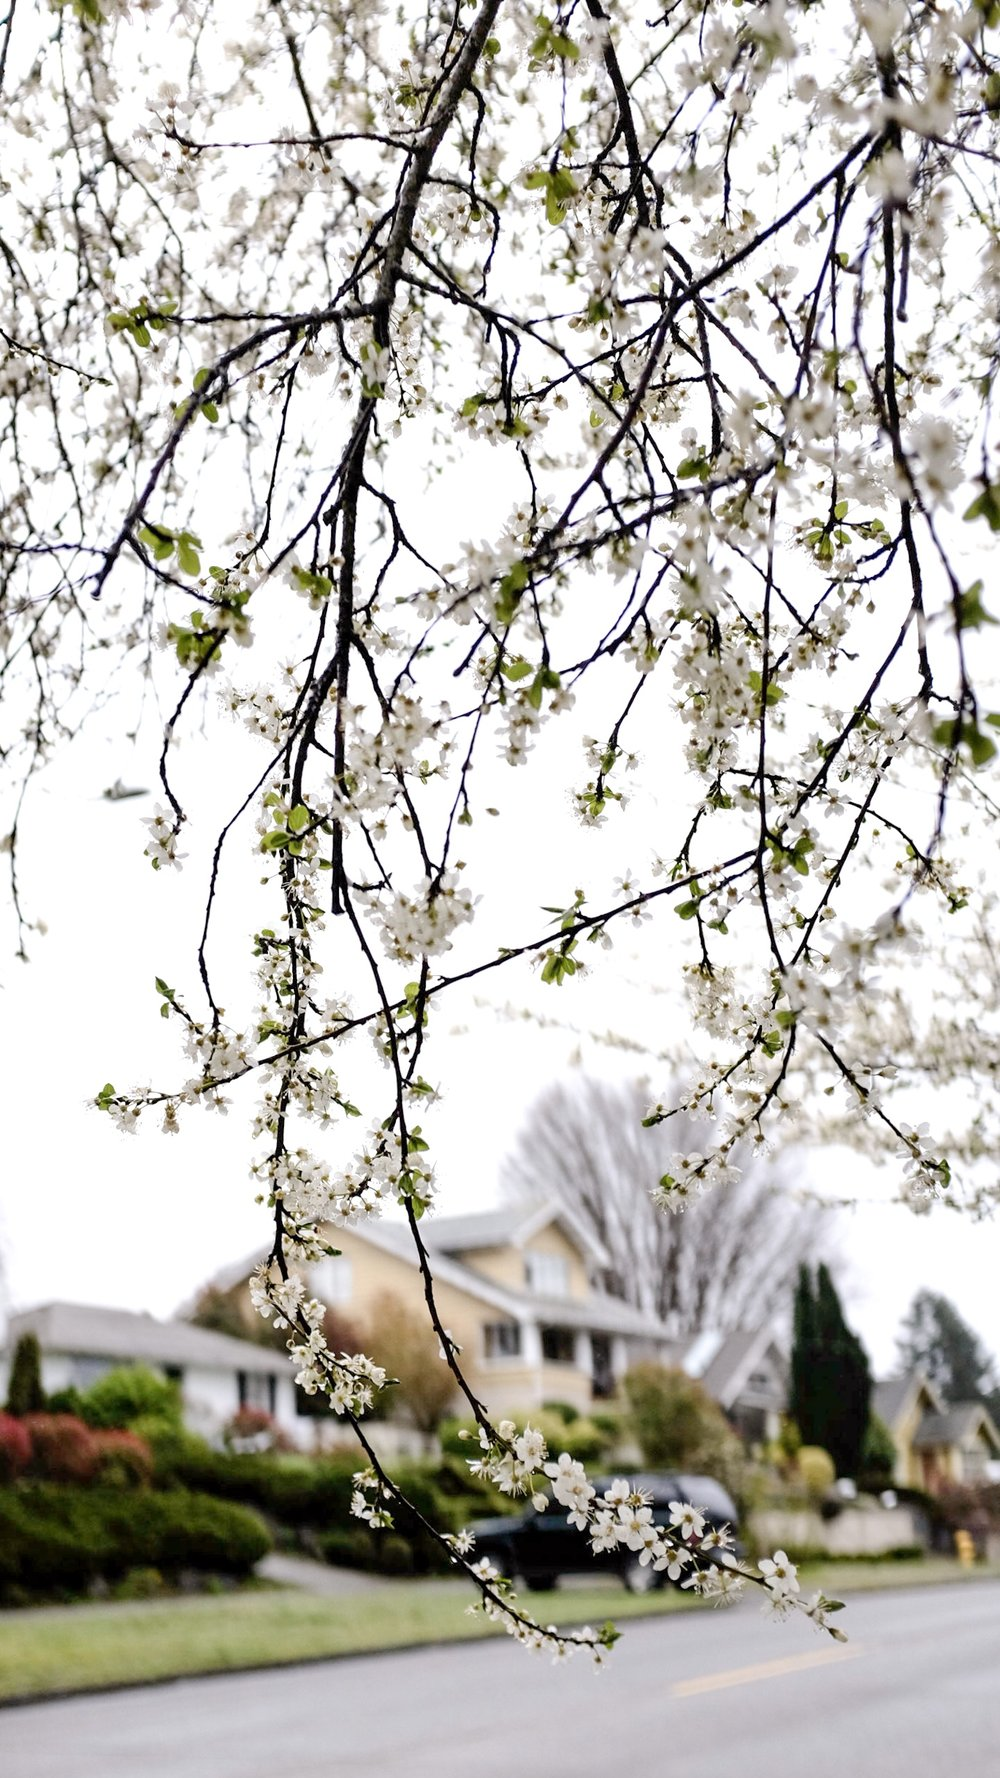 blossoms beatiful suburbs photograph